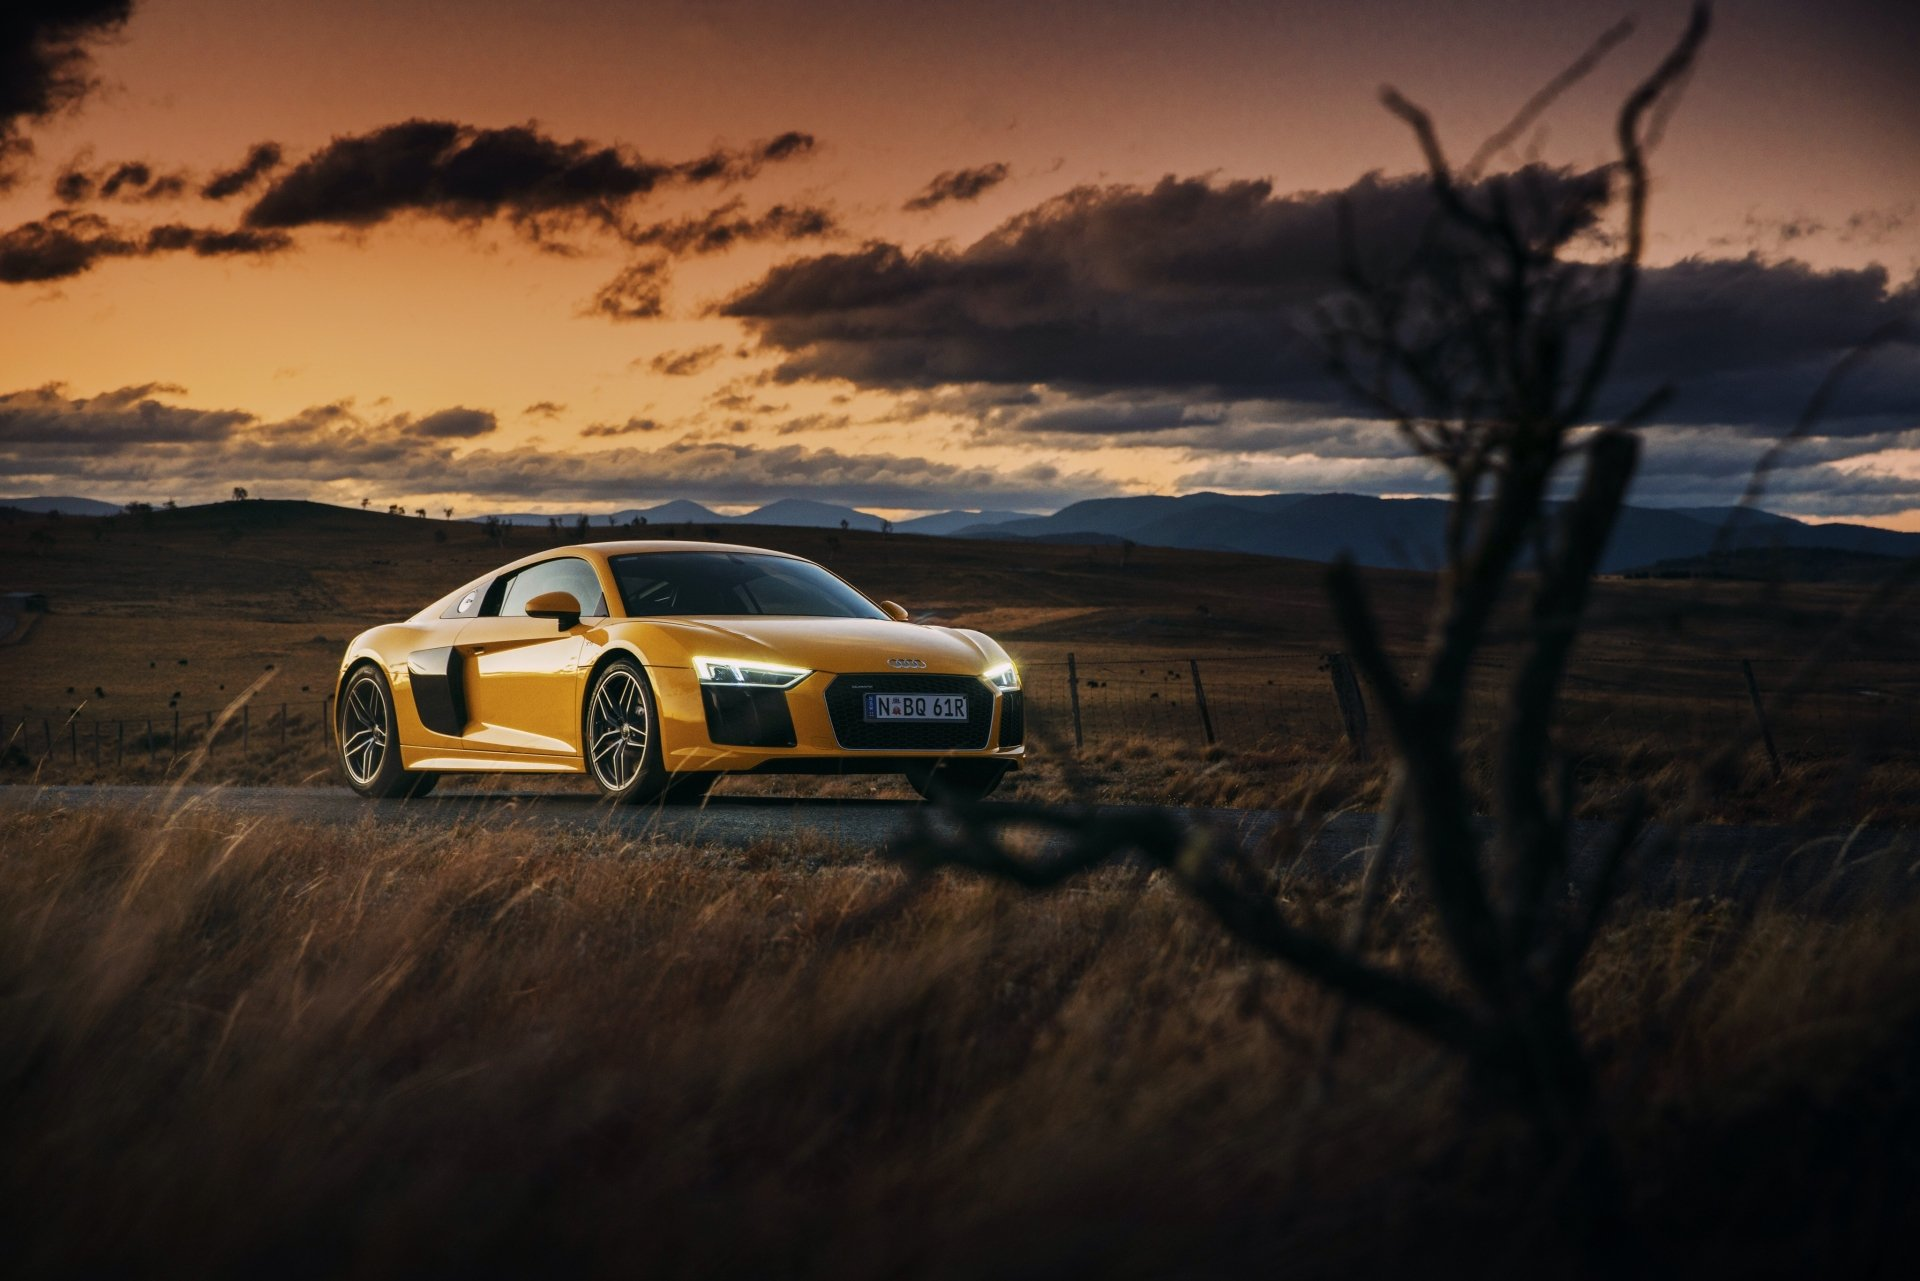 Vehicles - Audi R8  Audi Supercar Yellow Car Sport Car Car Vehicle Wallpaper